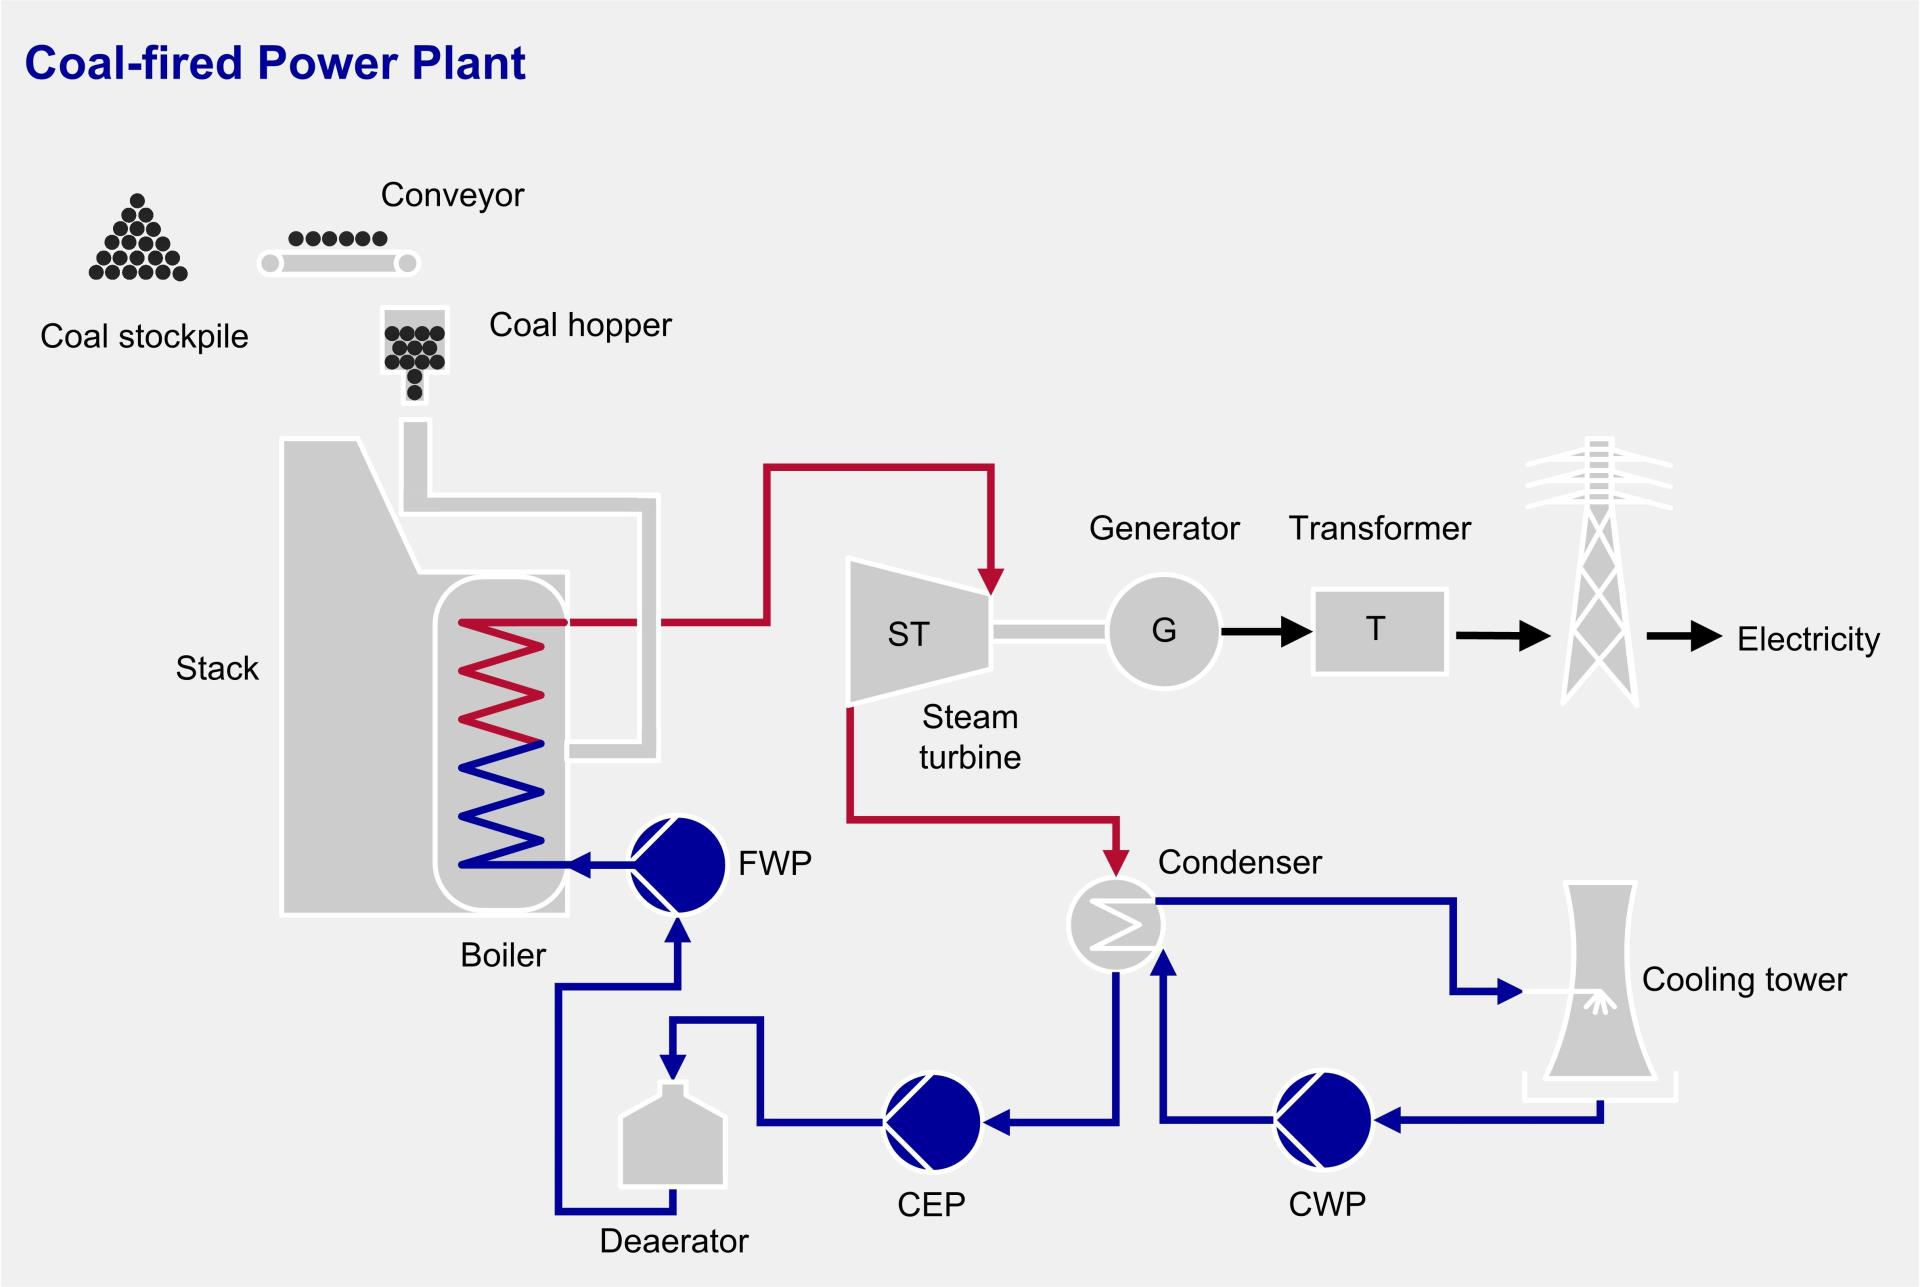 Coal-fired Power Plant Process